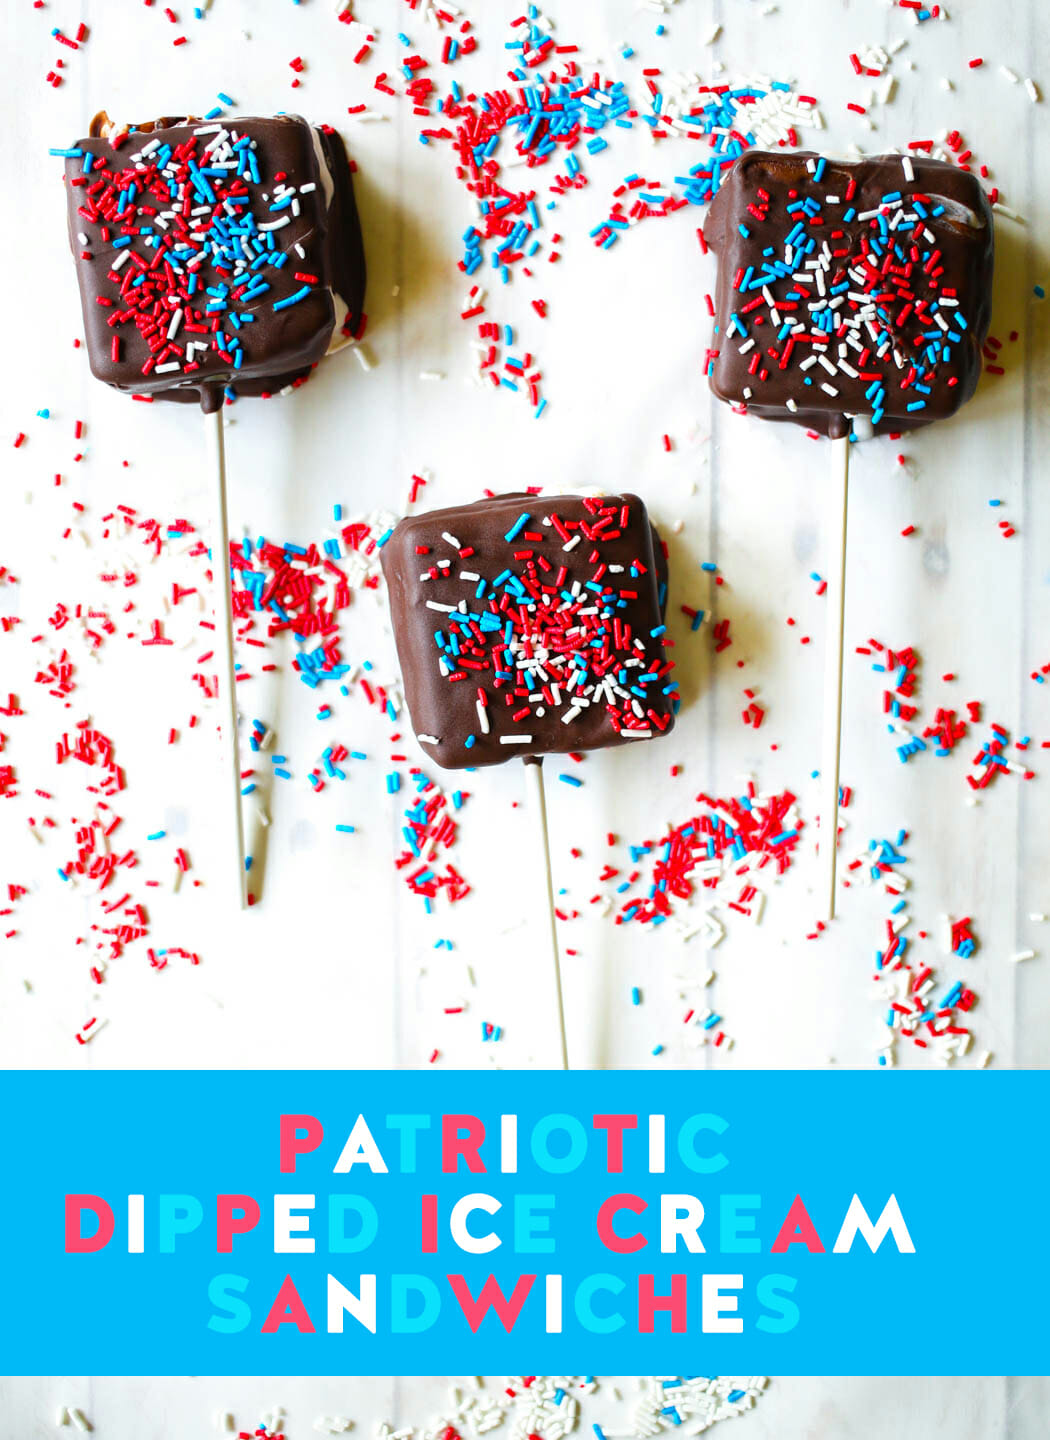 Patriotic Dipped Ice Cream Sandwiches